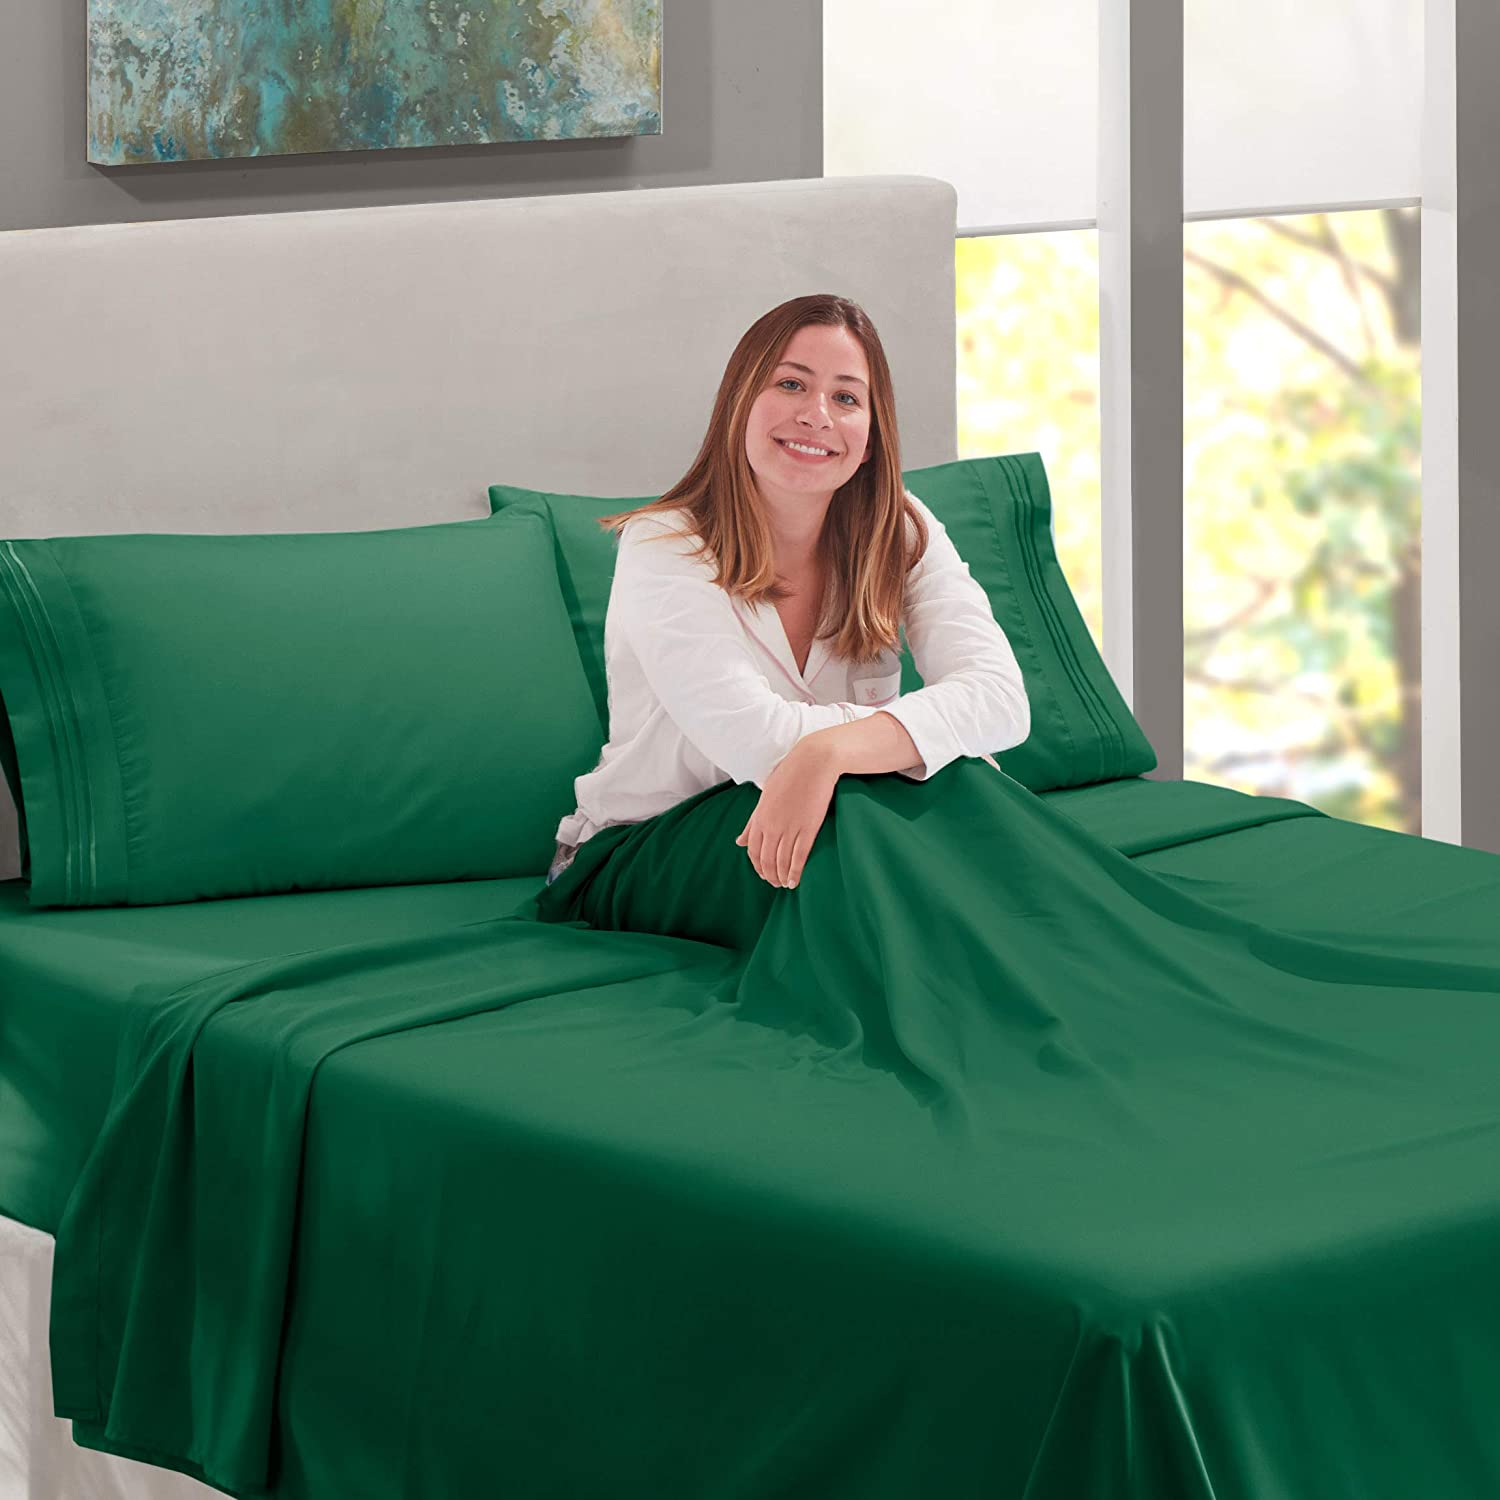 Nestl Luxury Queen Sheet Set 4 Piece Extra Soft 1800 Microfiber-Deep Pocket Bed Sheets with Fitted Sheet Hotel Grade Comfort and Softness 2 Pillow Cases-Breathable Hunter Green Flat Sheet